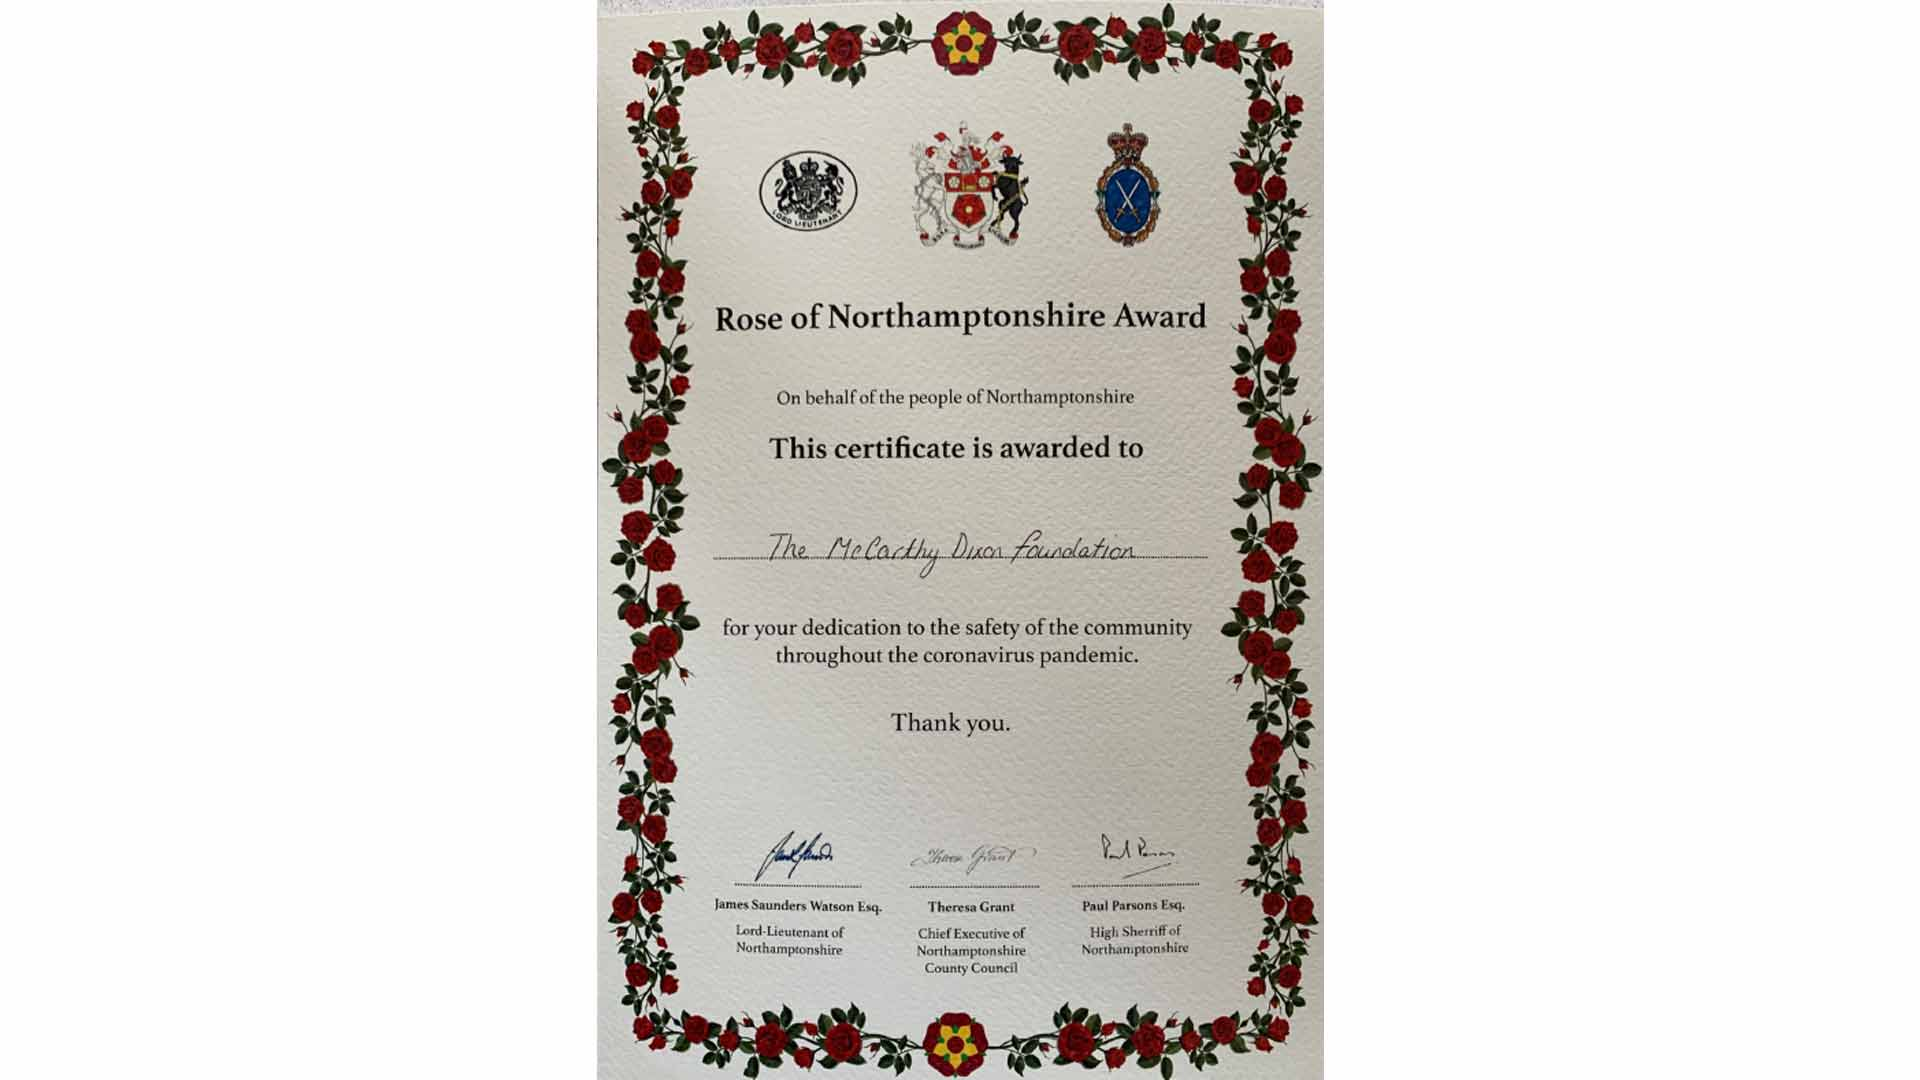 The McCarthy-Dixon Foundation won the Rose of Northamptonshire for dedication to the safety of the community during COVID